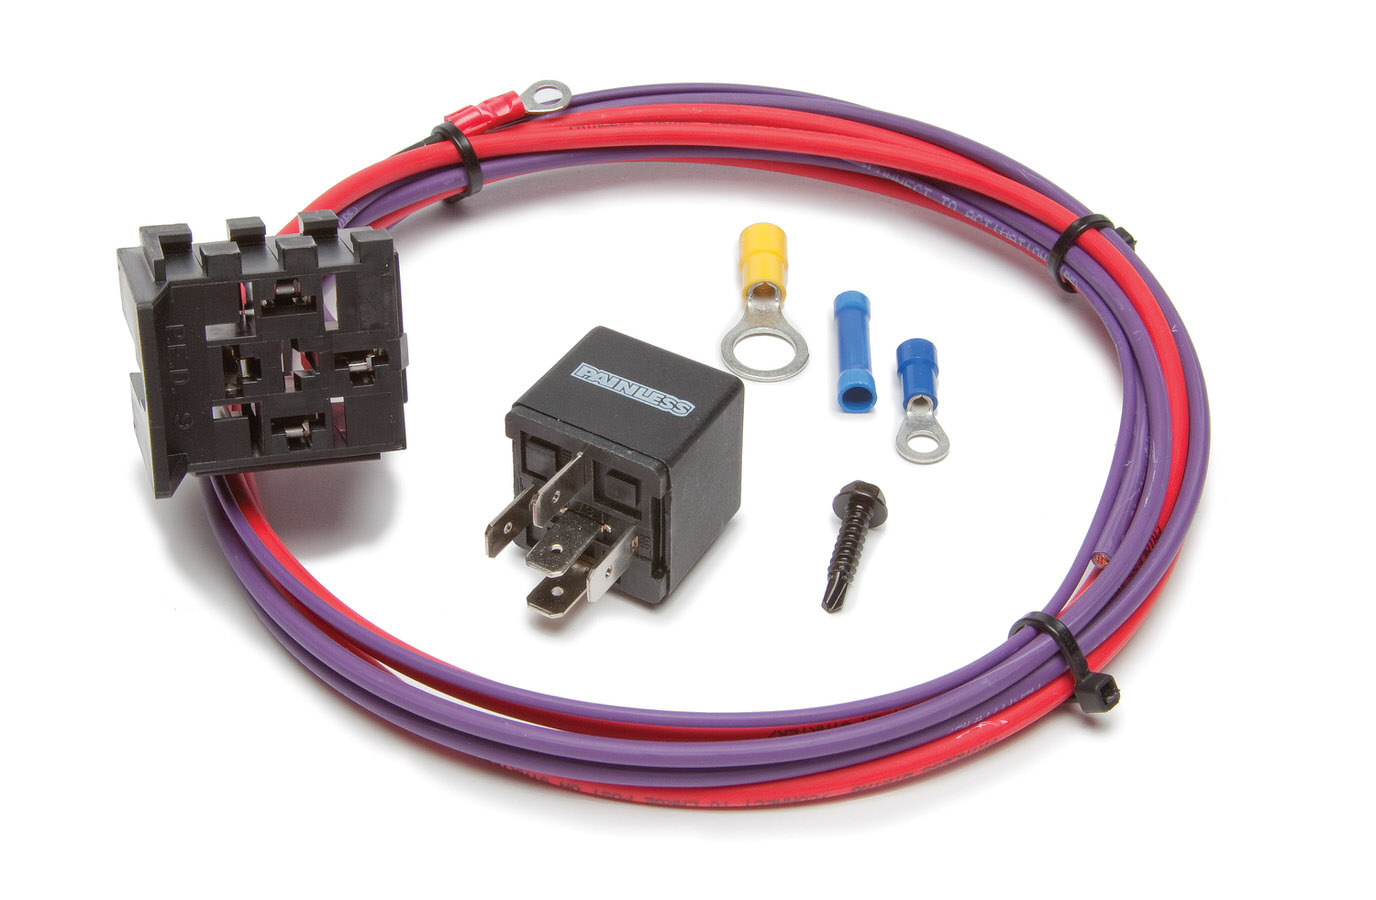 Painless Wiring 30202 Starter Relay, Hot Shot, 30 amp, 12V, Wiring Pigtail Included, Amperage Boost, Universal, Kit